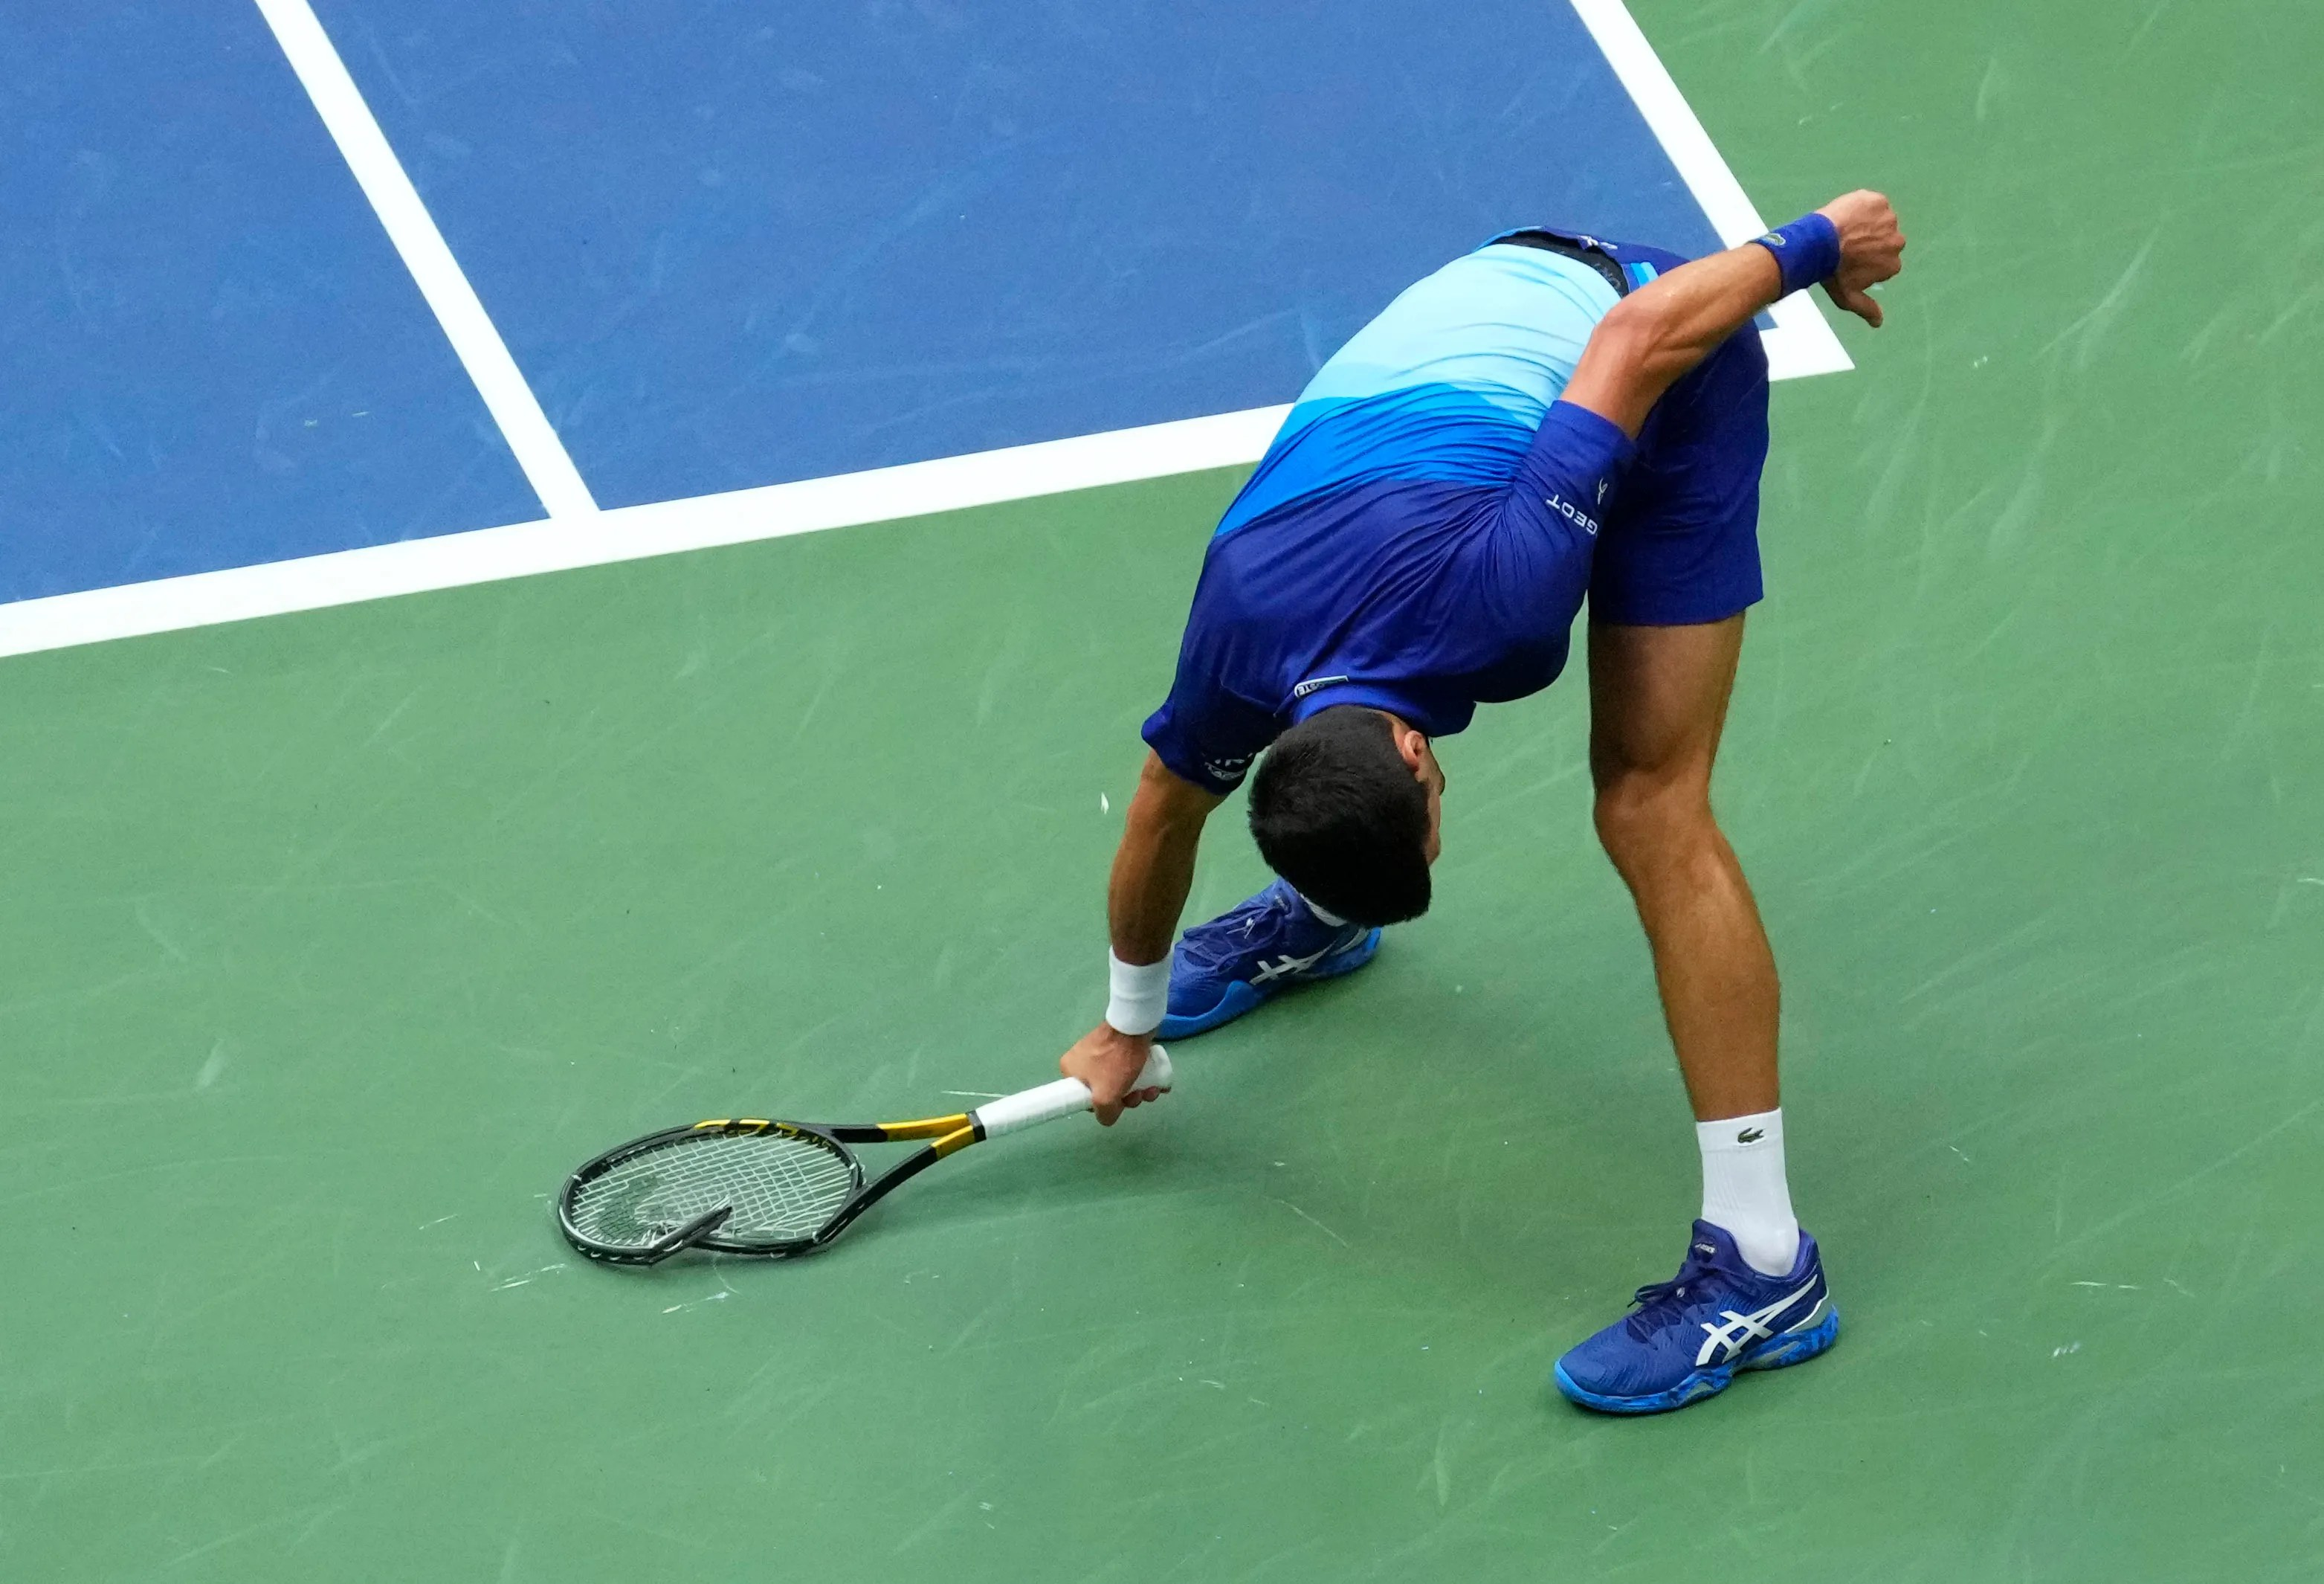 Novak Djokovic smashes his racquet during the second set of the U.S. Open men's final.